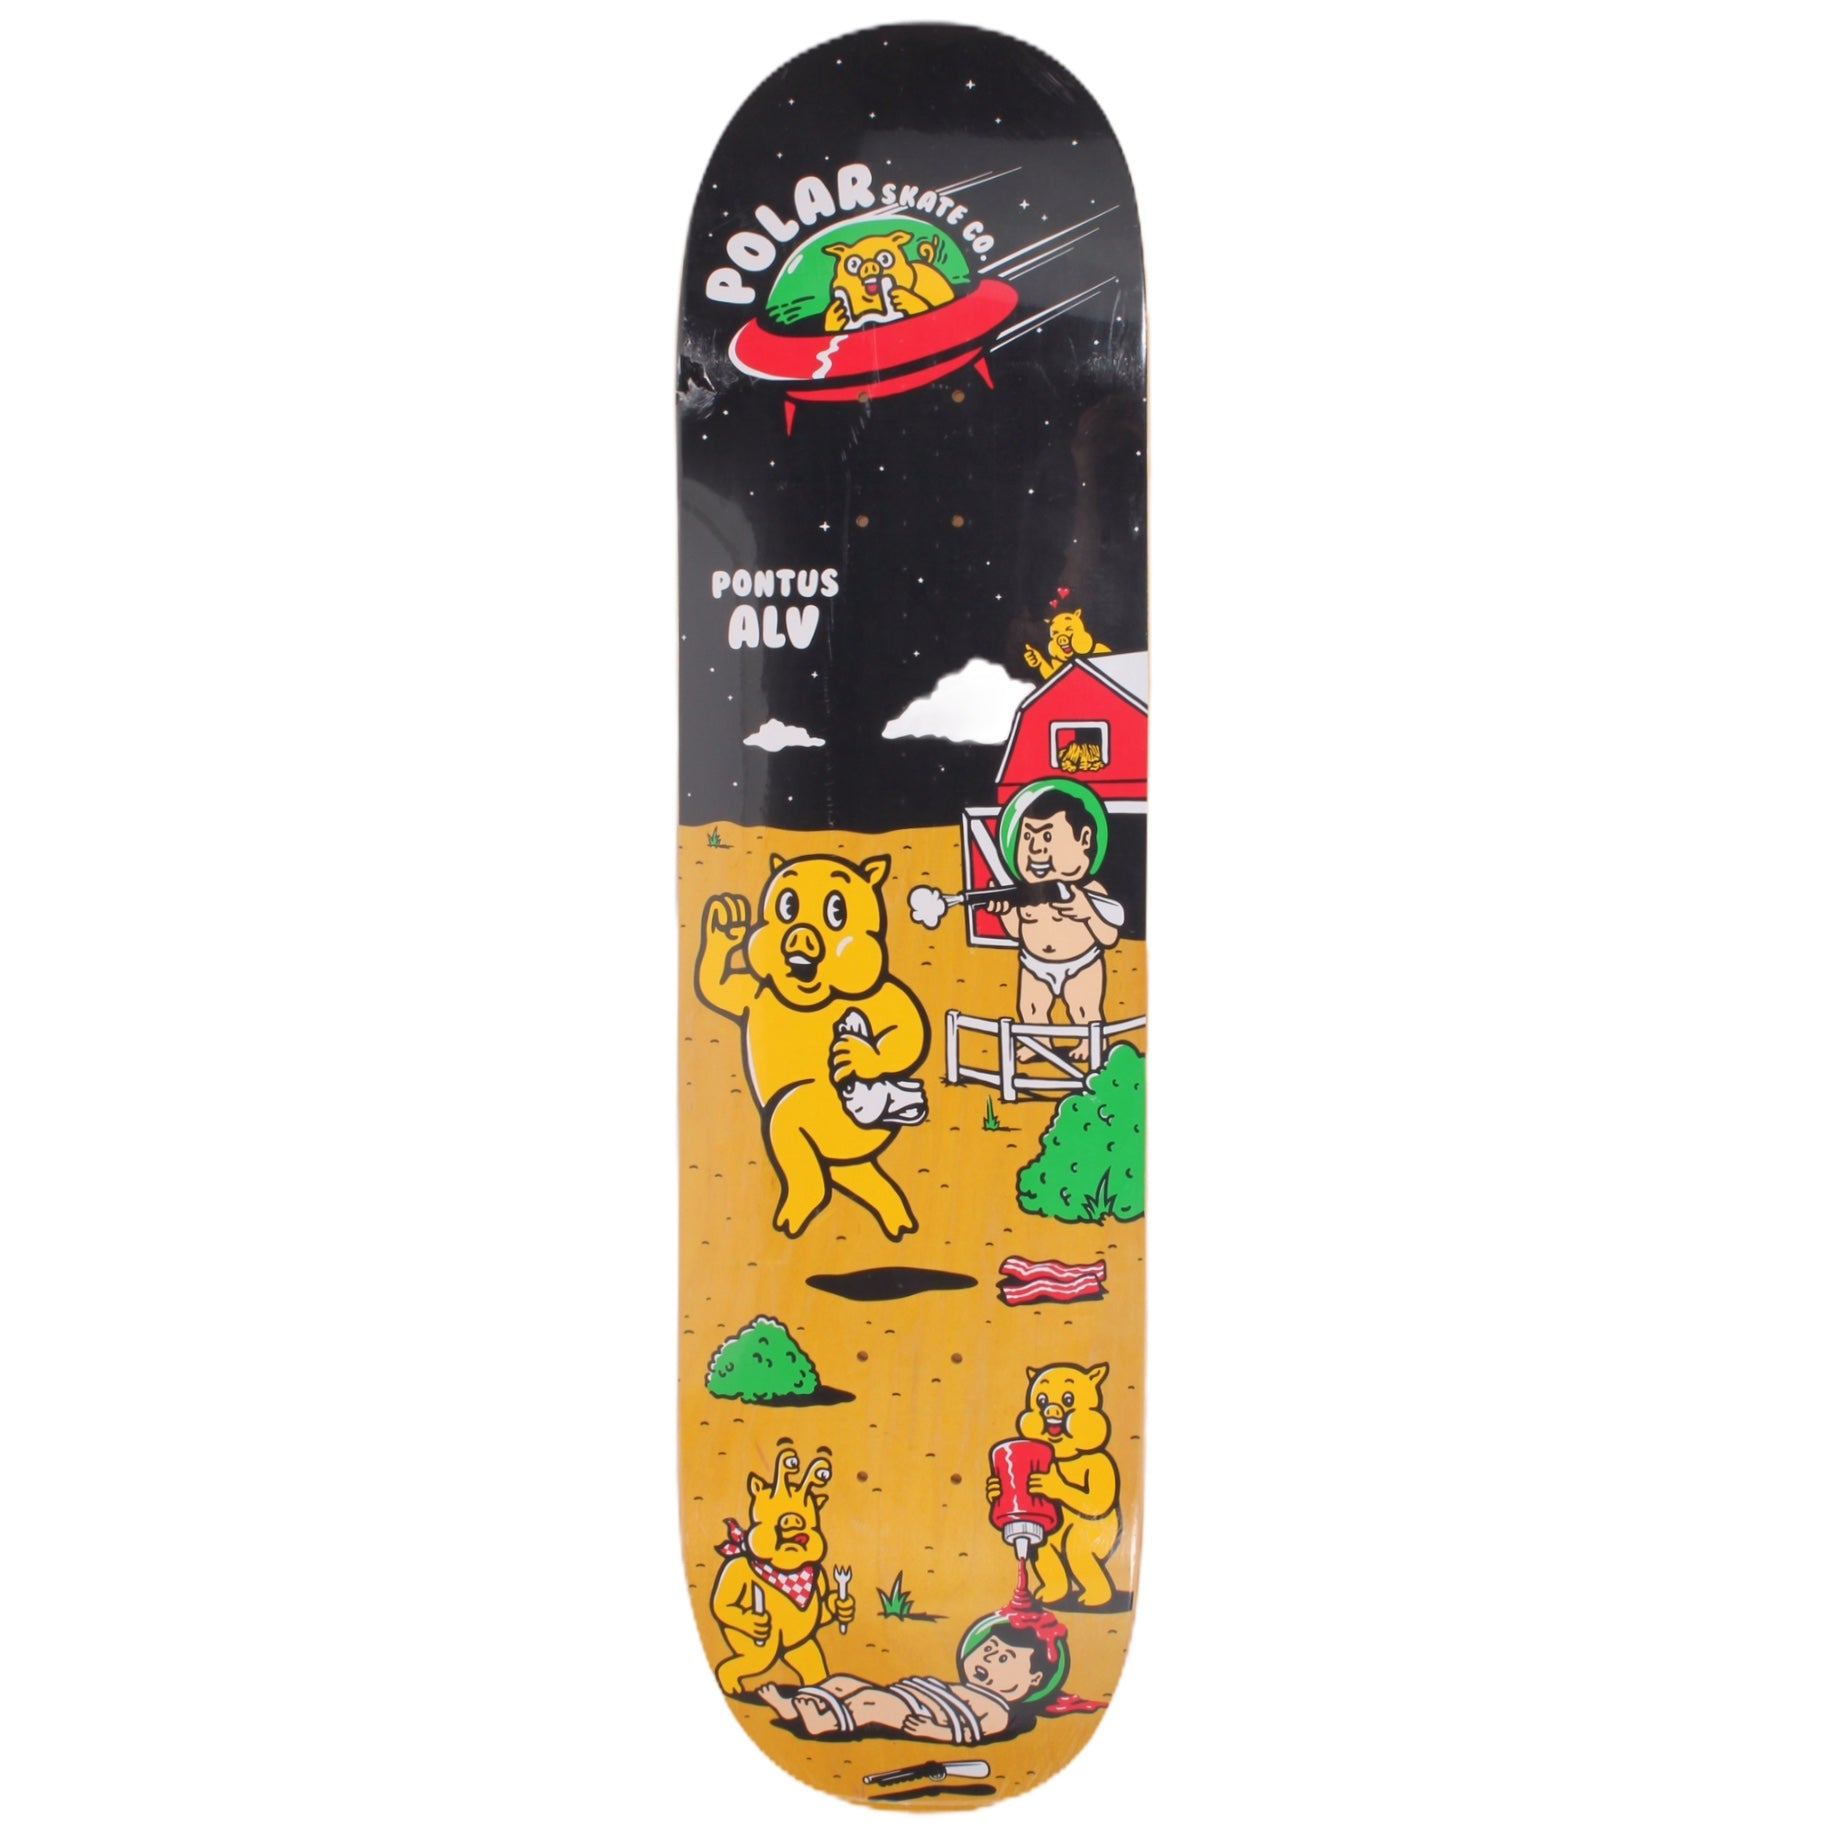 Overripe Polar Deck Alv Space Pigs 2015